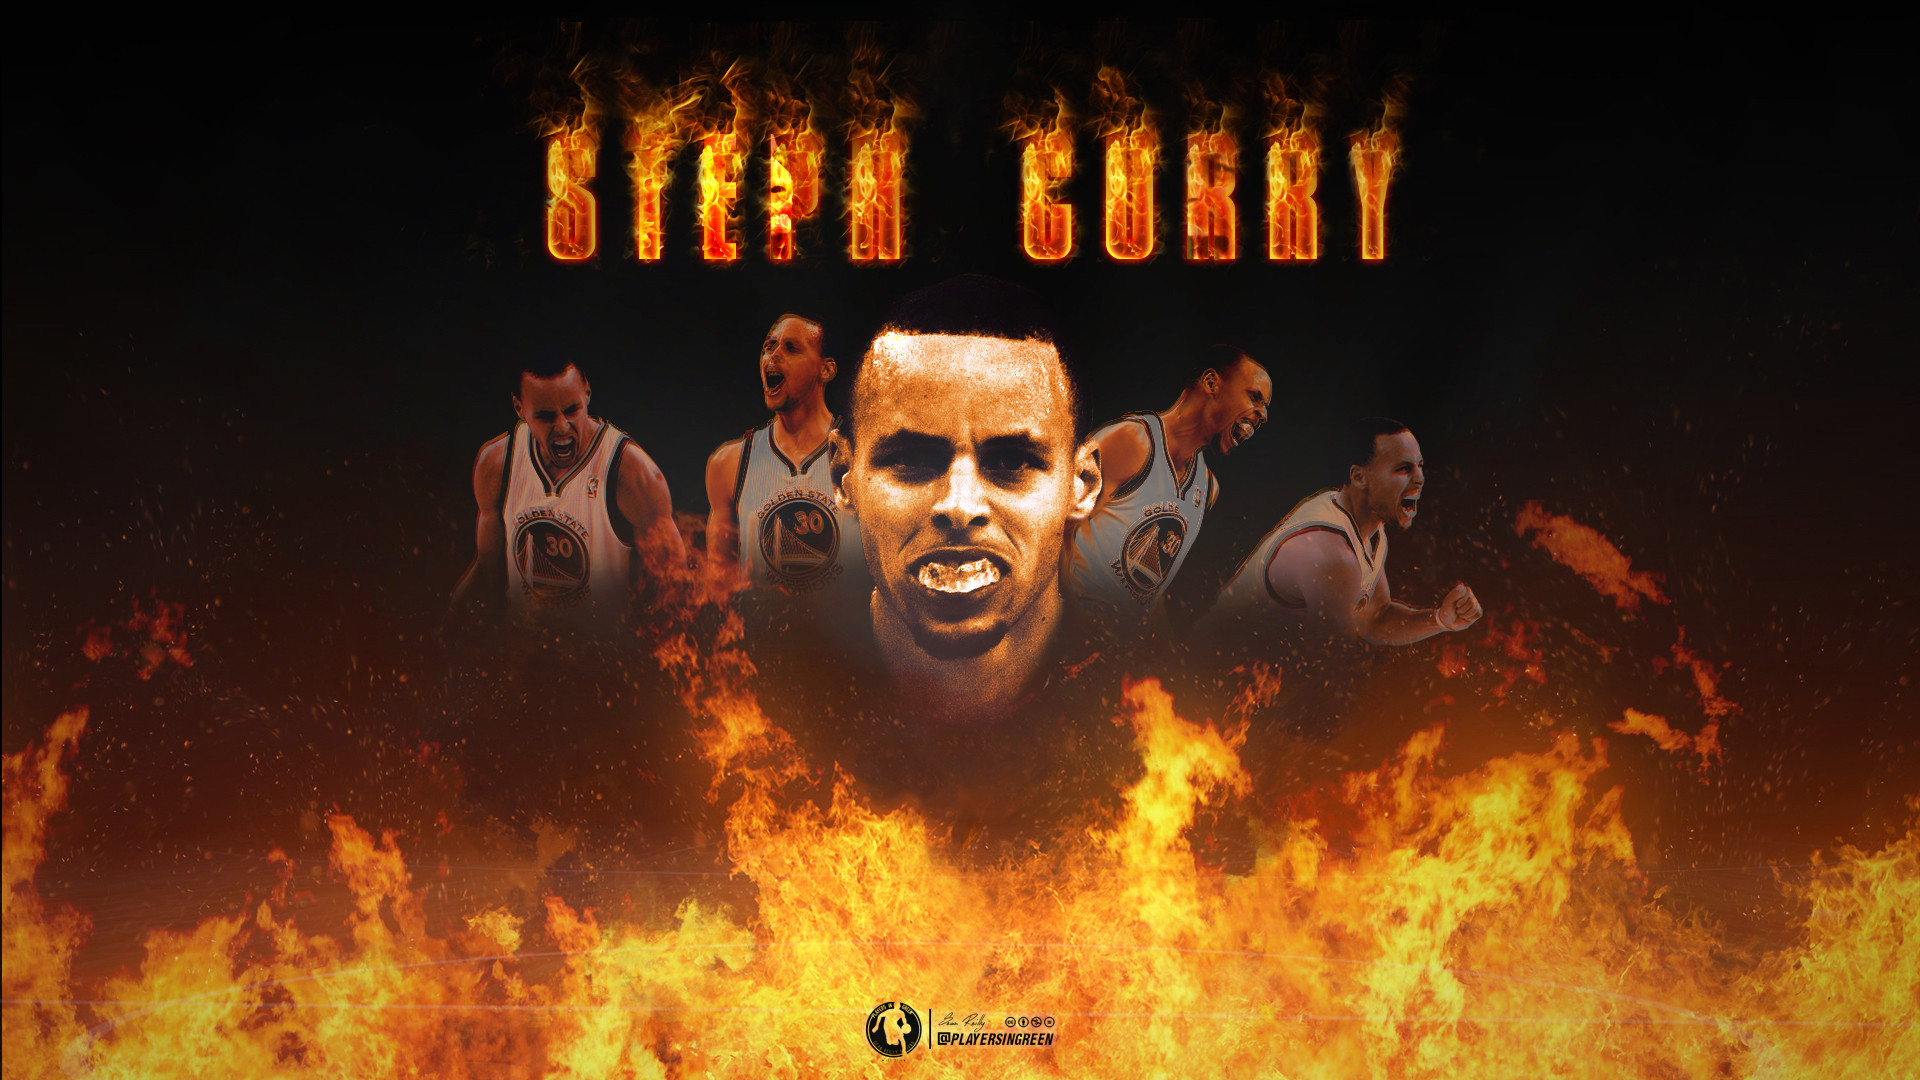 Stephen Curry Fire Wallpaper ·① WallpaperTag